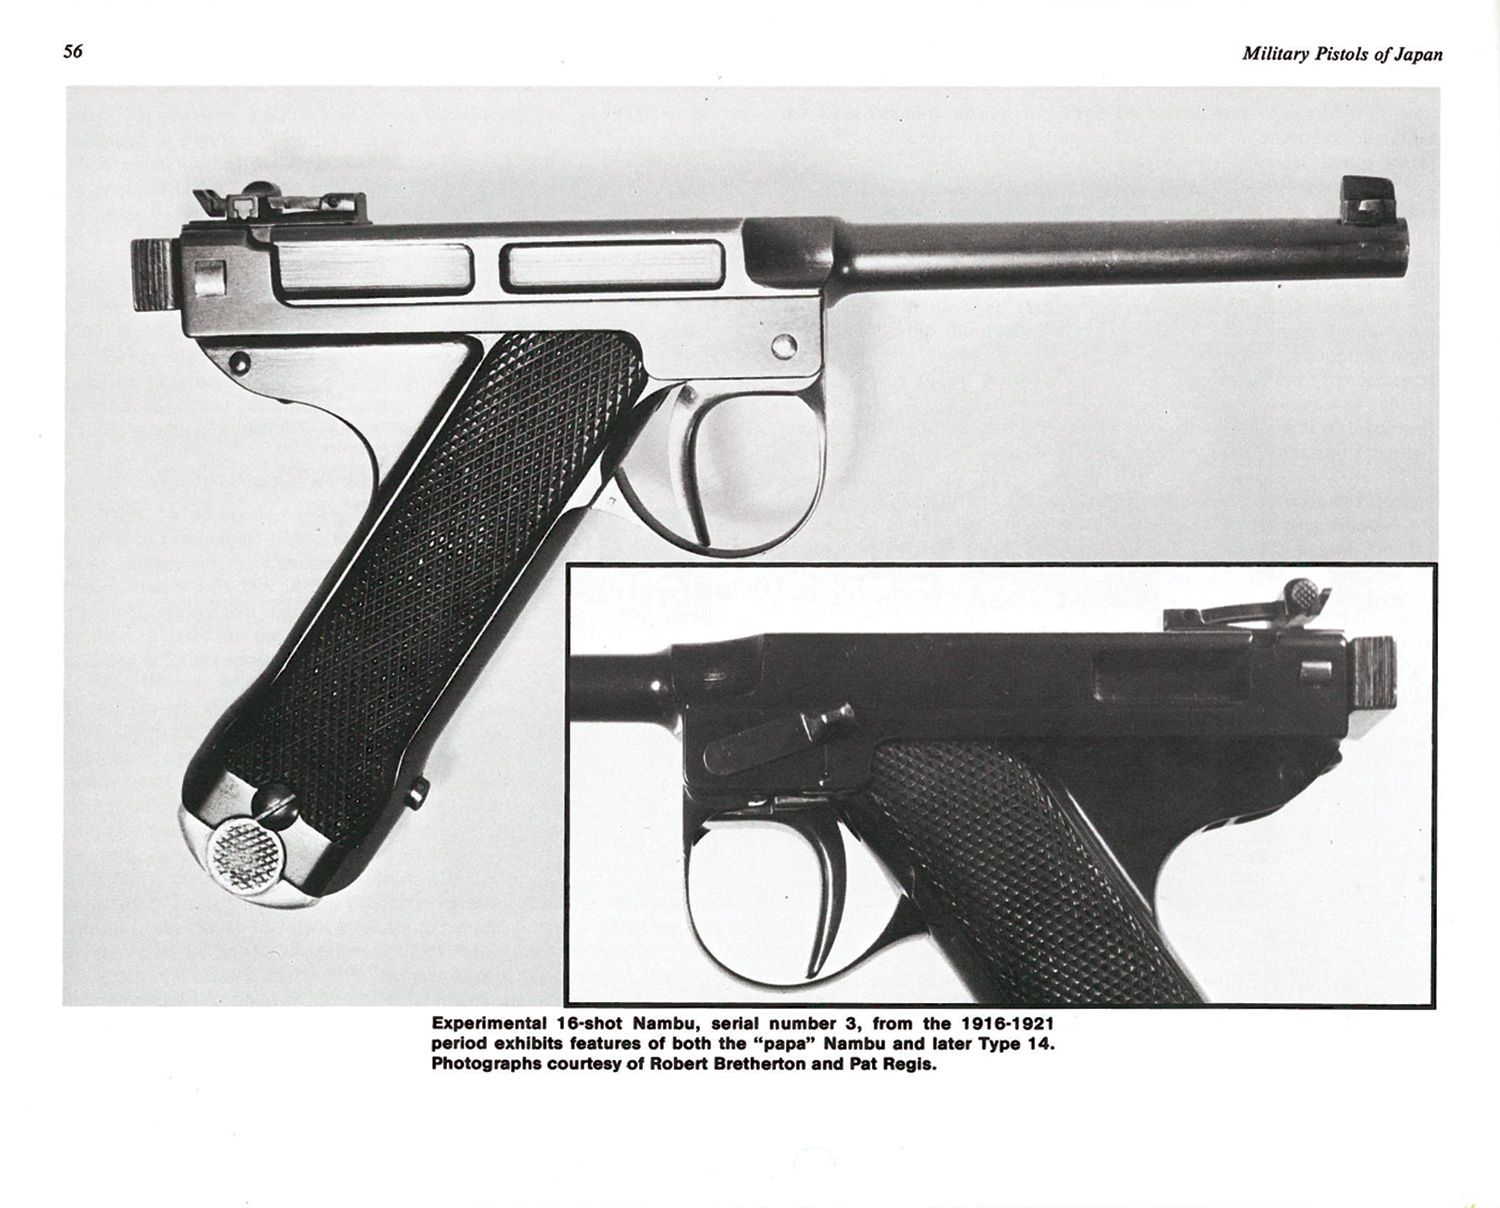 Spp 1 underwater pistol - Mp 3008 Sten Reference Page Last Ditch German Volksturm Weapon Guns Pinterest Weapons Guns And Submachine Gun